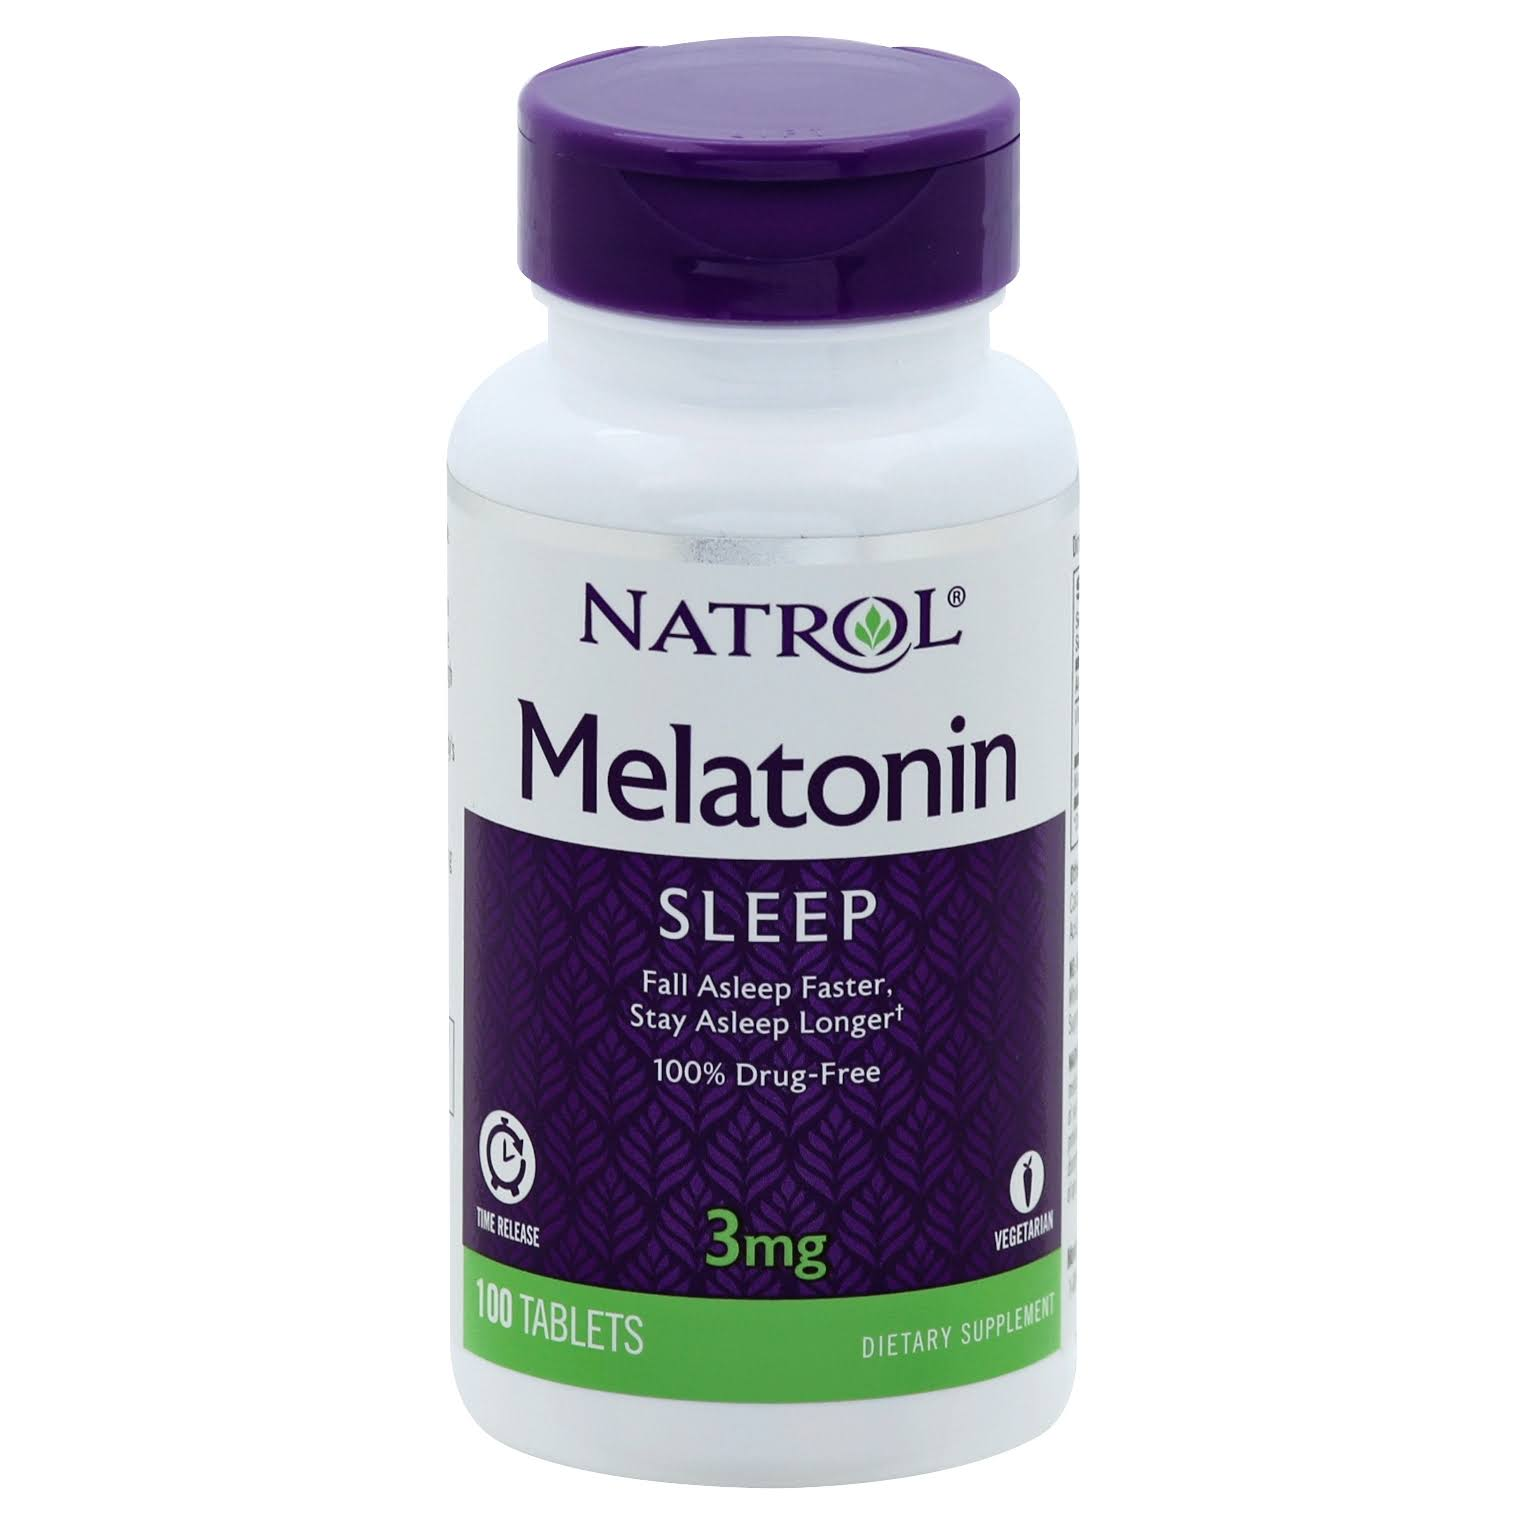 Natrol Melatonin Time Release Dietary Supplement - 3mg, 100 Tablets